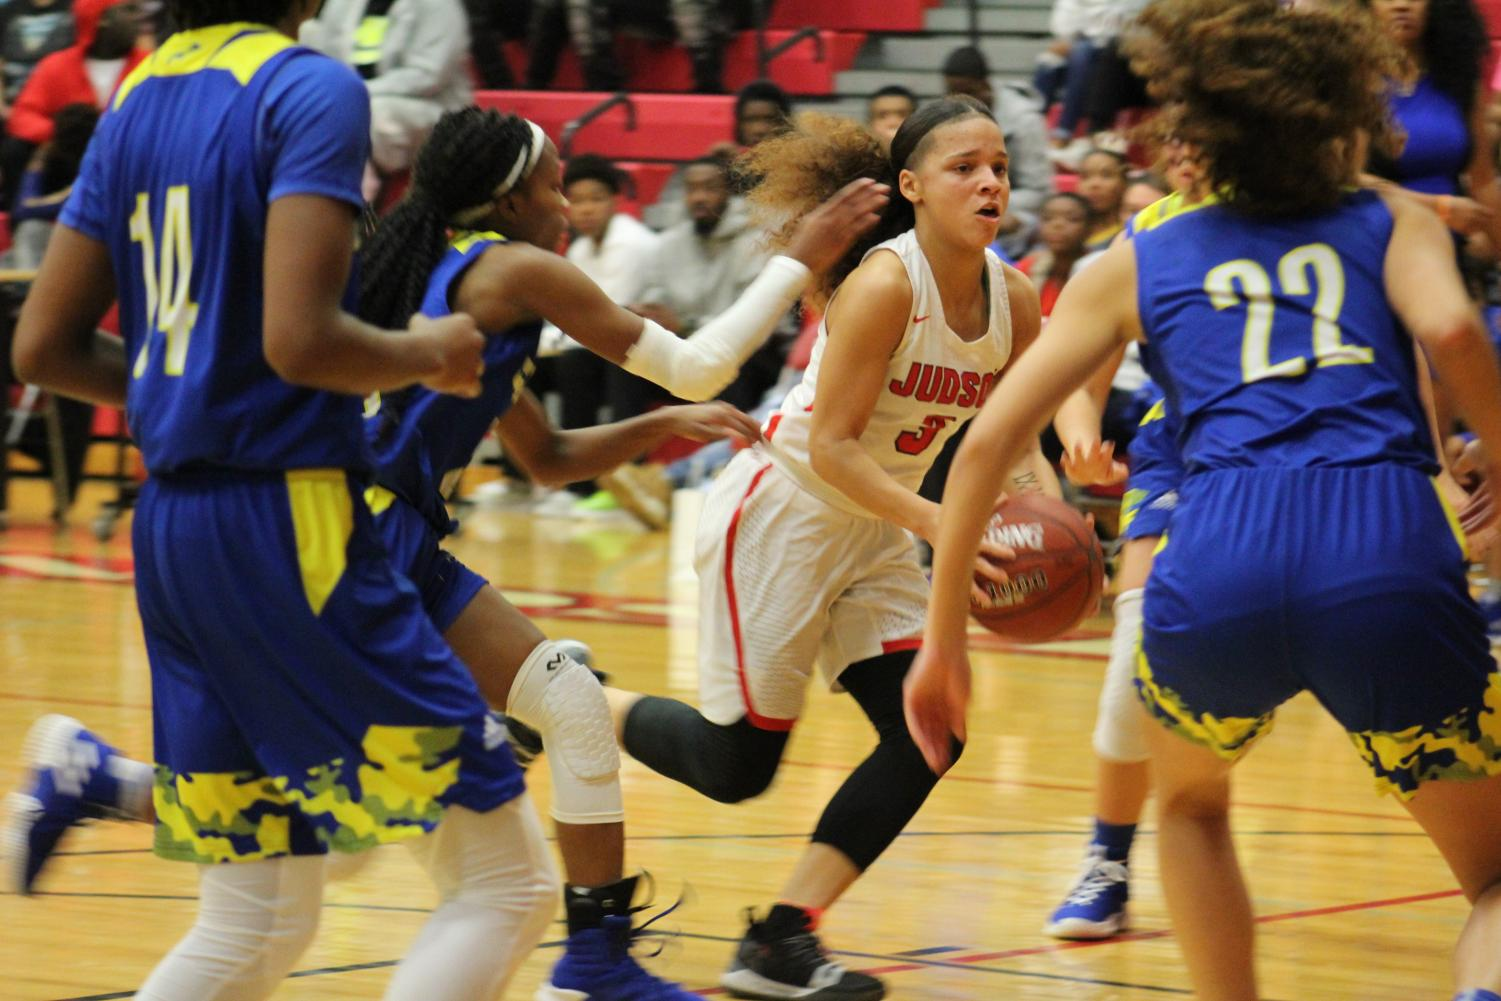 Senior Corina Carter drives past the Buffalo defense during a home district game. The Rockets blasted the Clemens Buffaloes, 85-41.